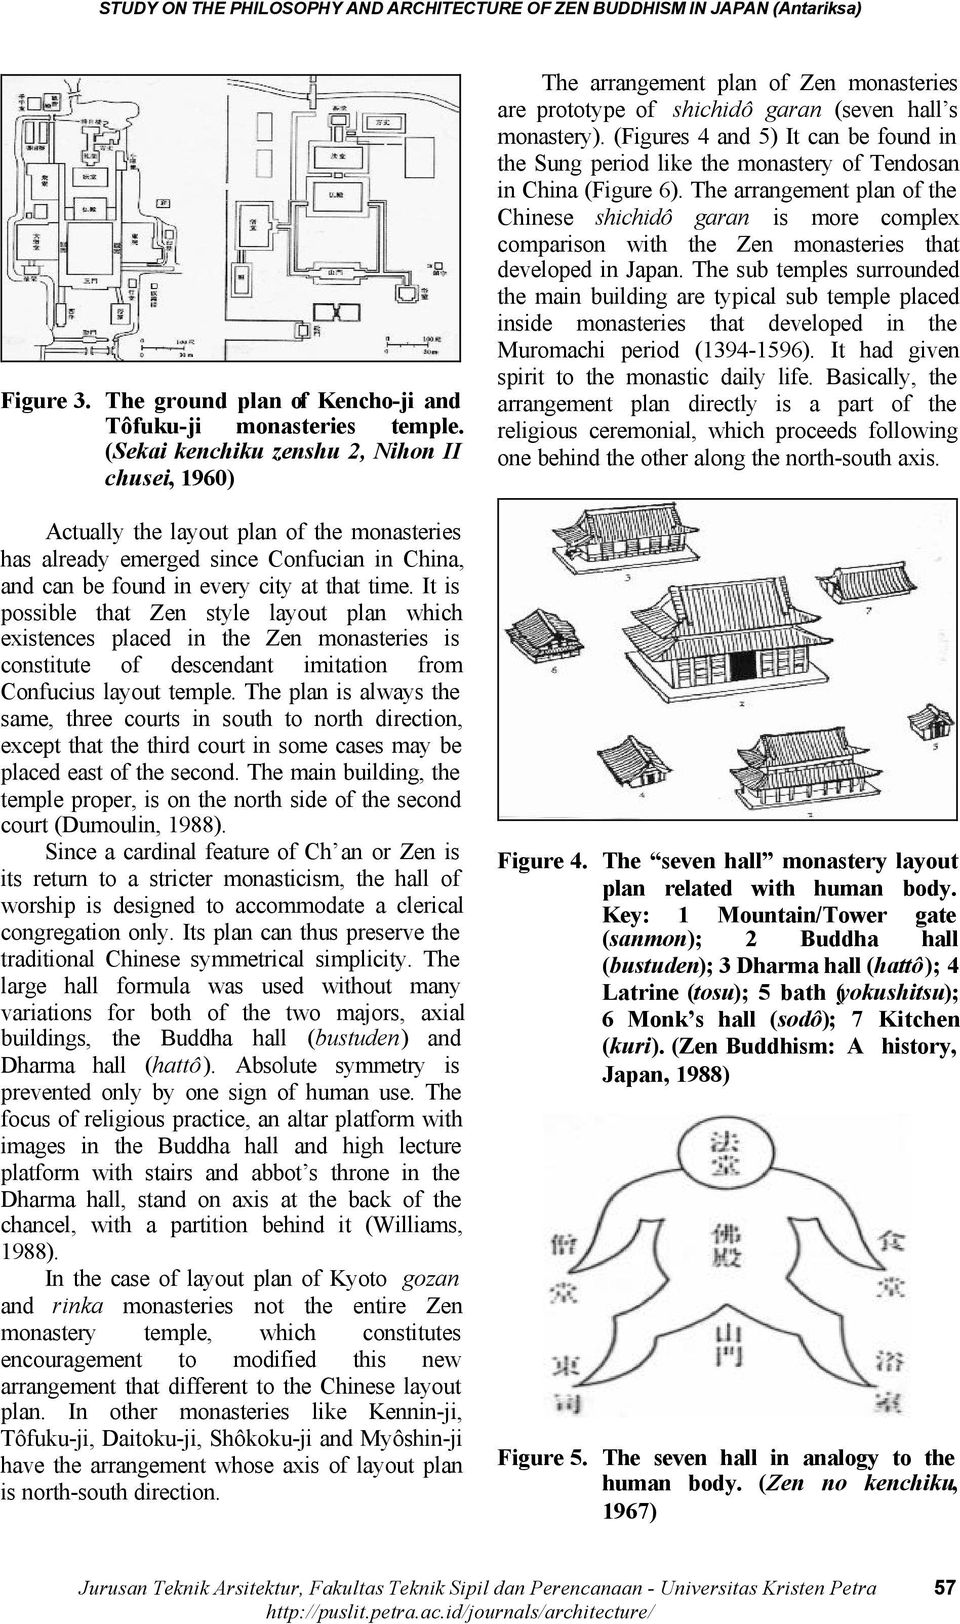 hight resolution of it is possible that zen style layout plan which existences placed in the zen monasteries is